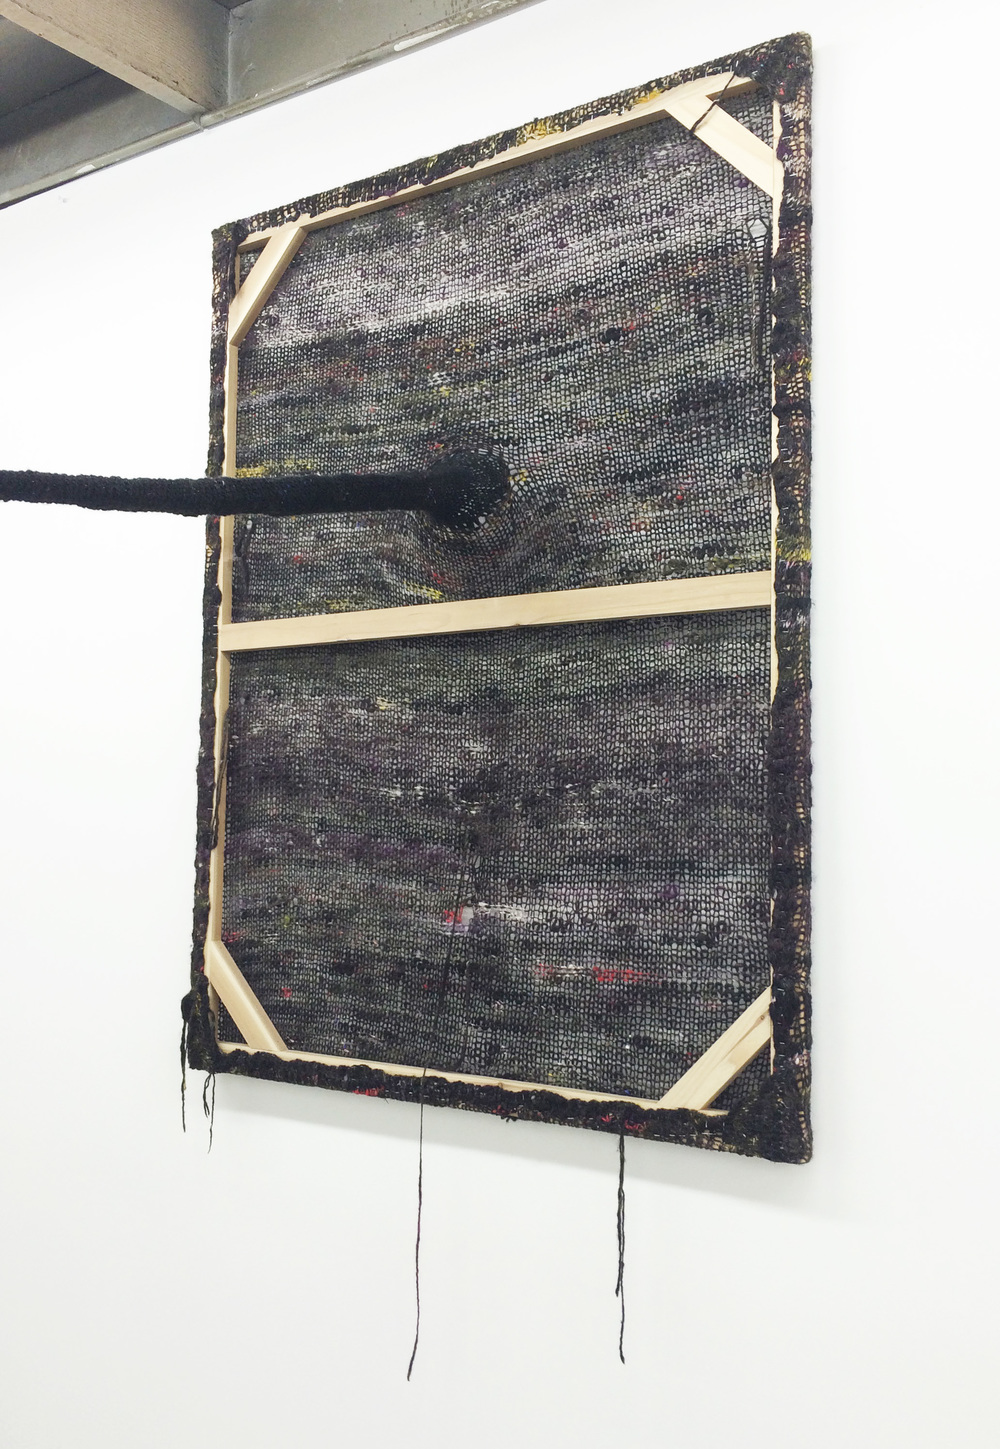 Channing Hansen, Augueries of Science, 2015 (right side)